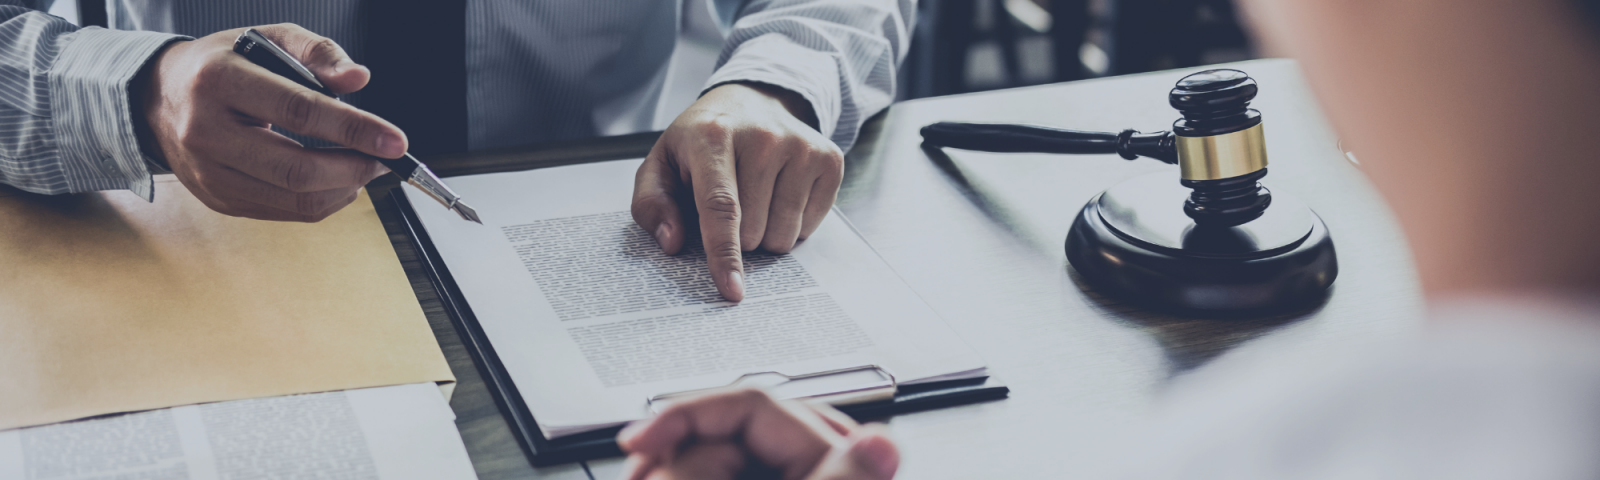 Construction Law Blog: Contract Conflicts And Extra Work Claims